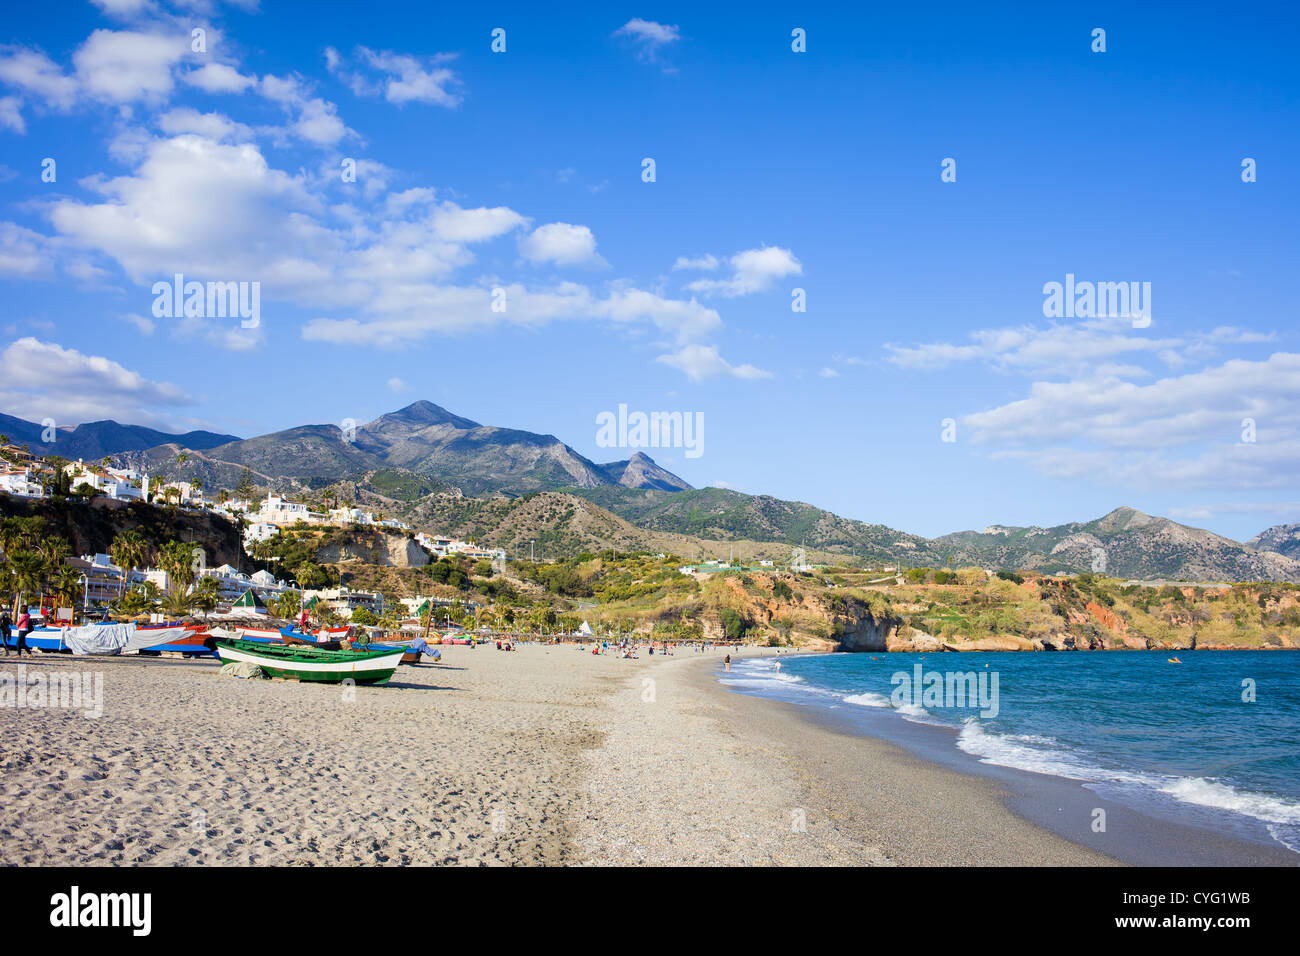 Burriana beach at the Mediterranean Sea in Nerja, Spain, Costa del Sol, southern Andalusia region. - Stock Image